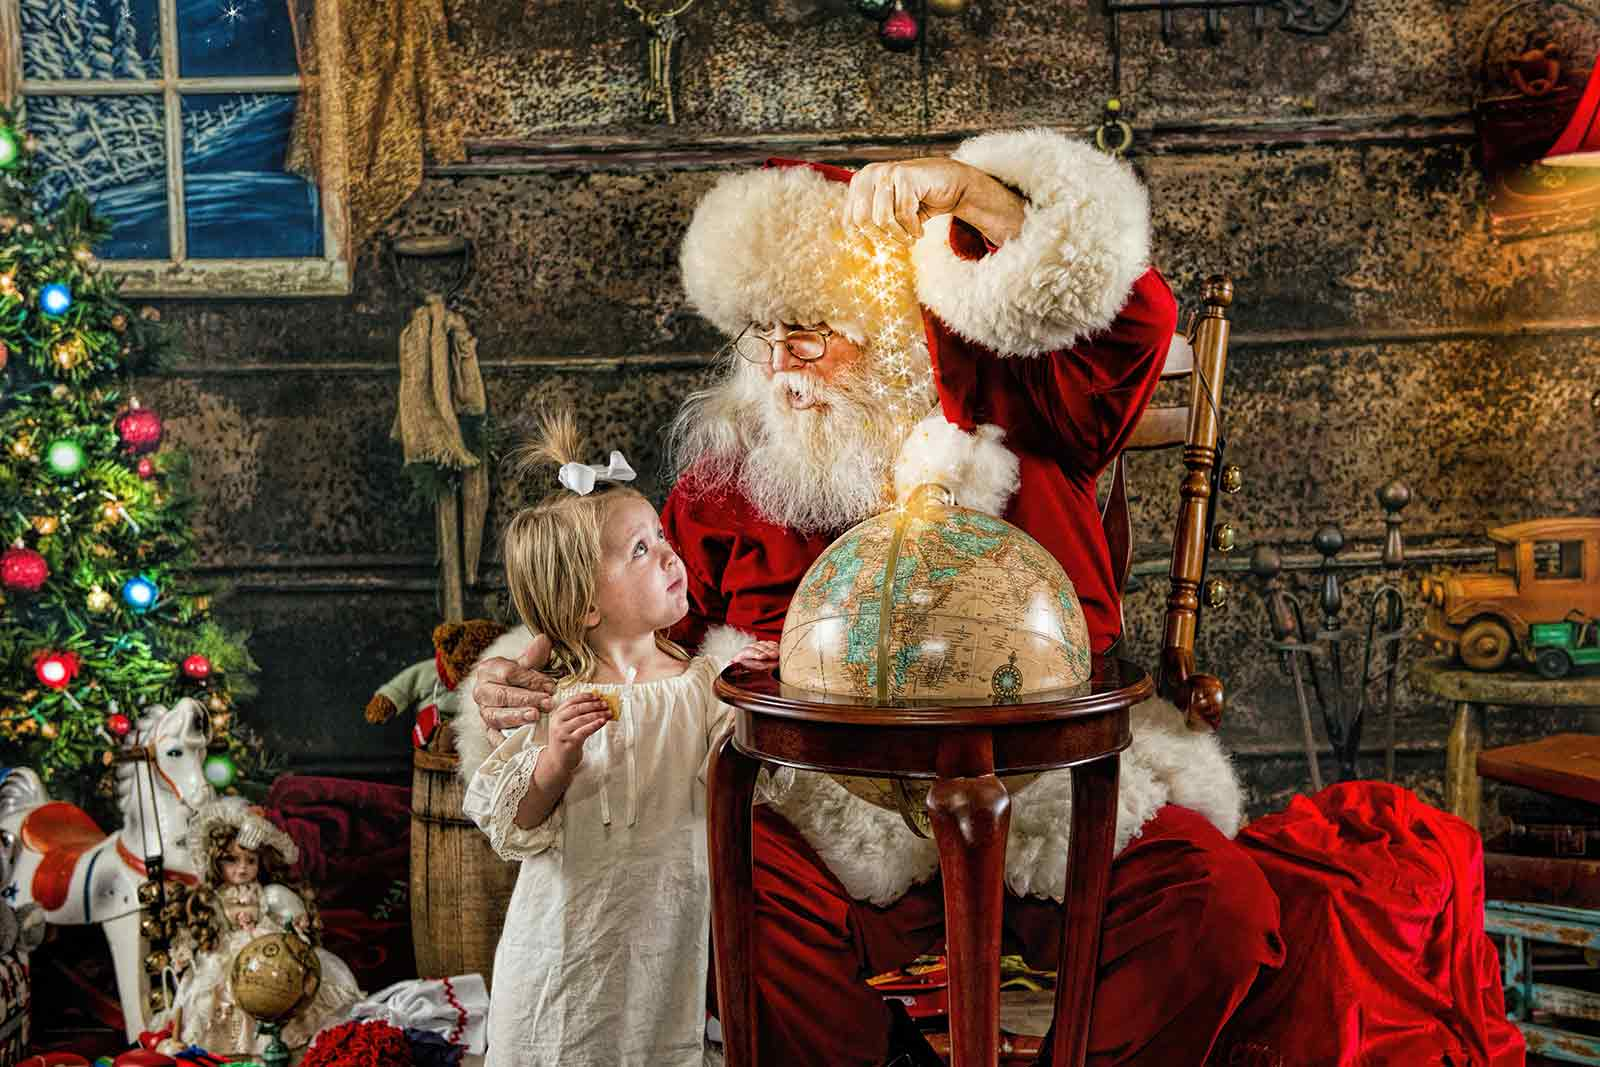 023_Magic-of-Santa-Anna-Thielen-Photography